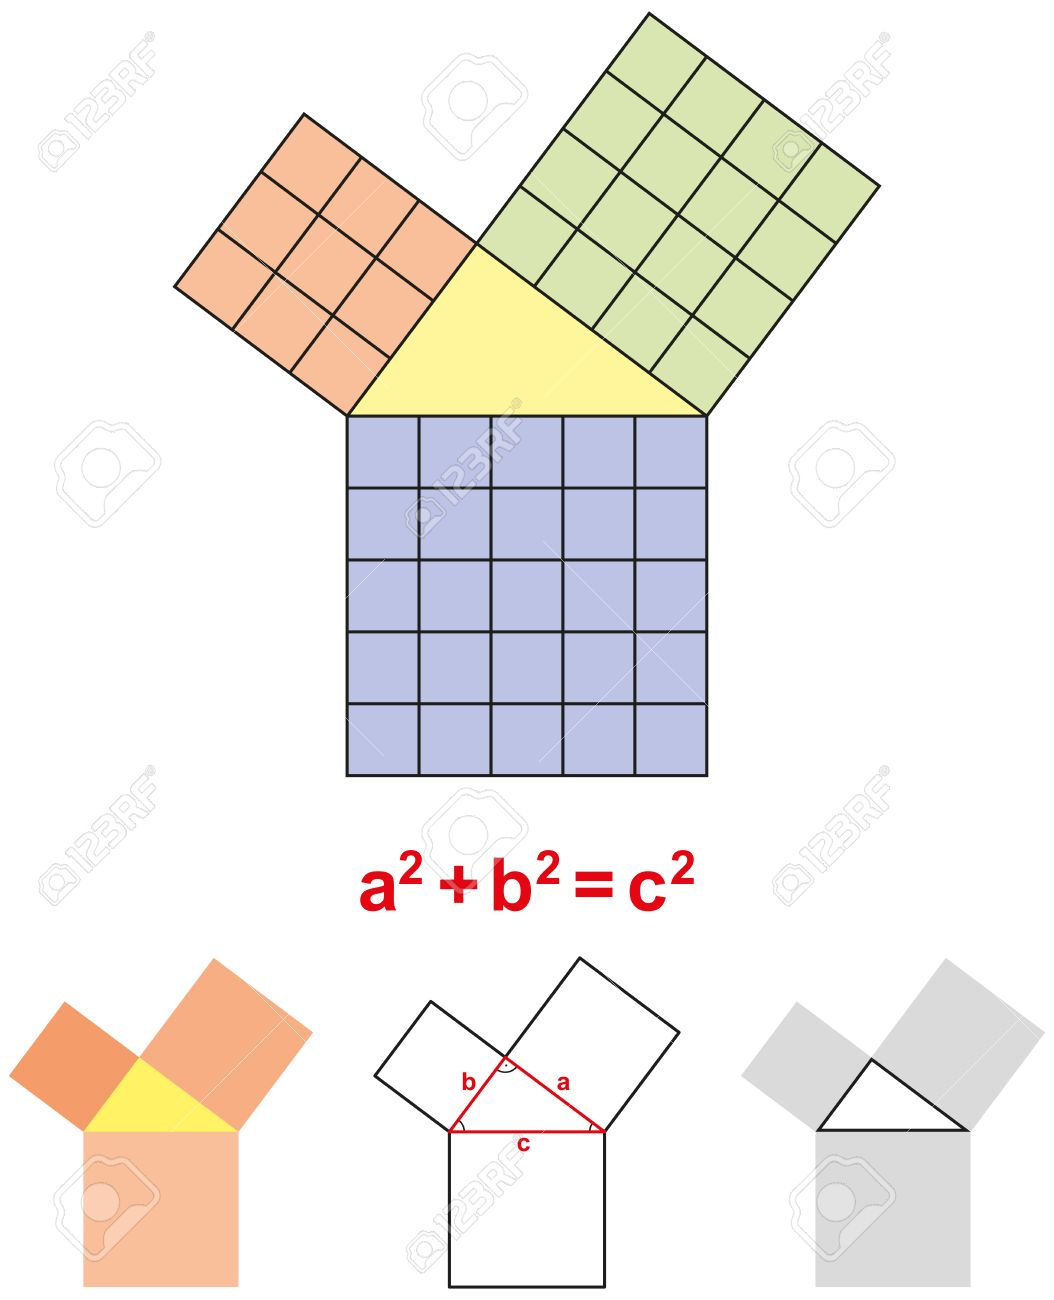 Pythagorean Theorem - The Pythagorean Theorem is a relation in